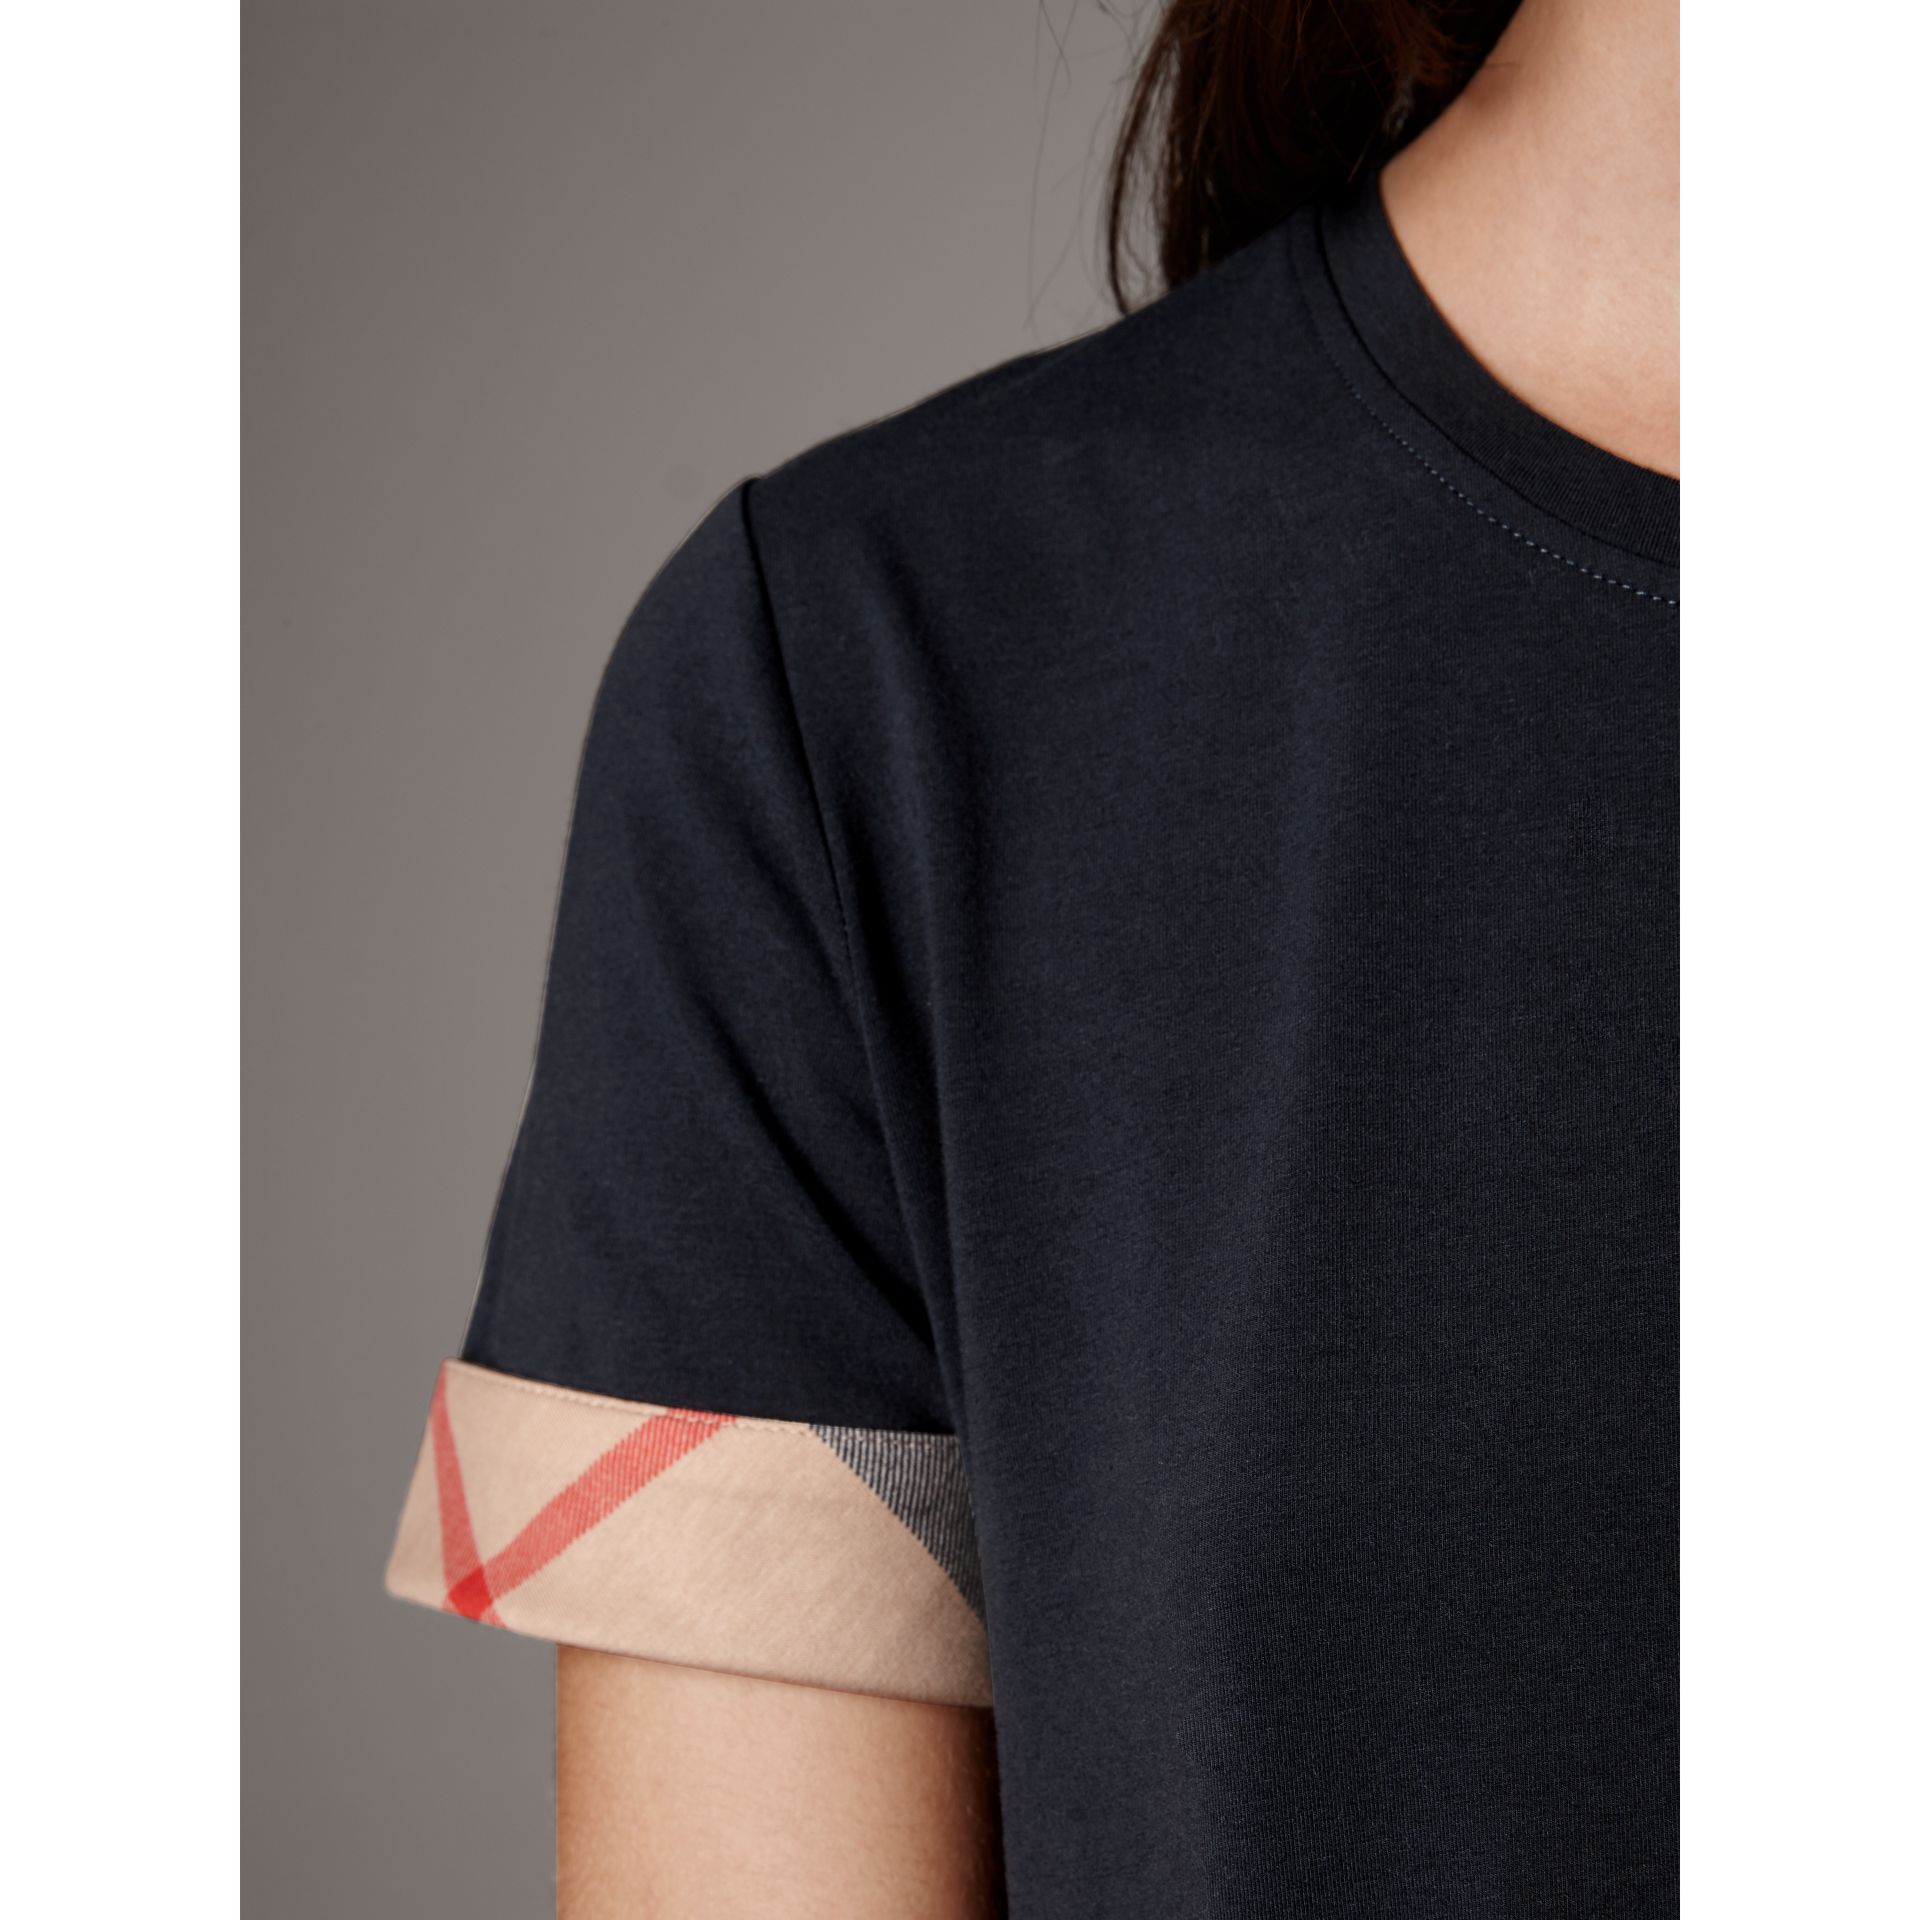 Check Cuff Stretch Cotton T-Shirt in Navy - Women | Burberry United States - gallery image 1